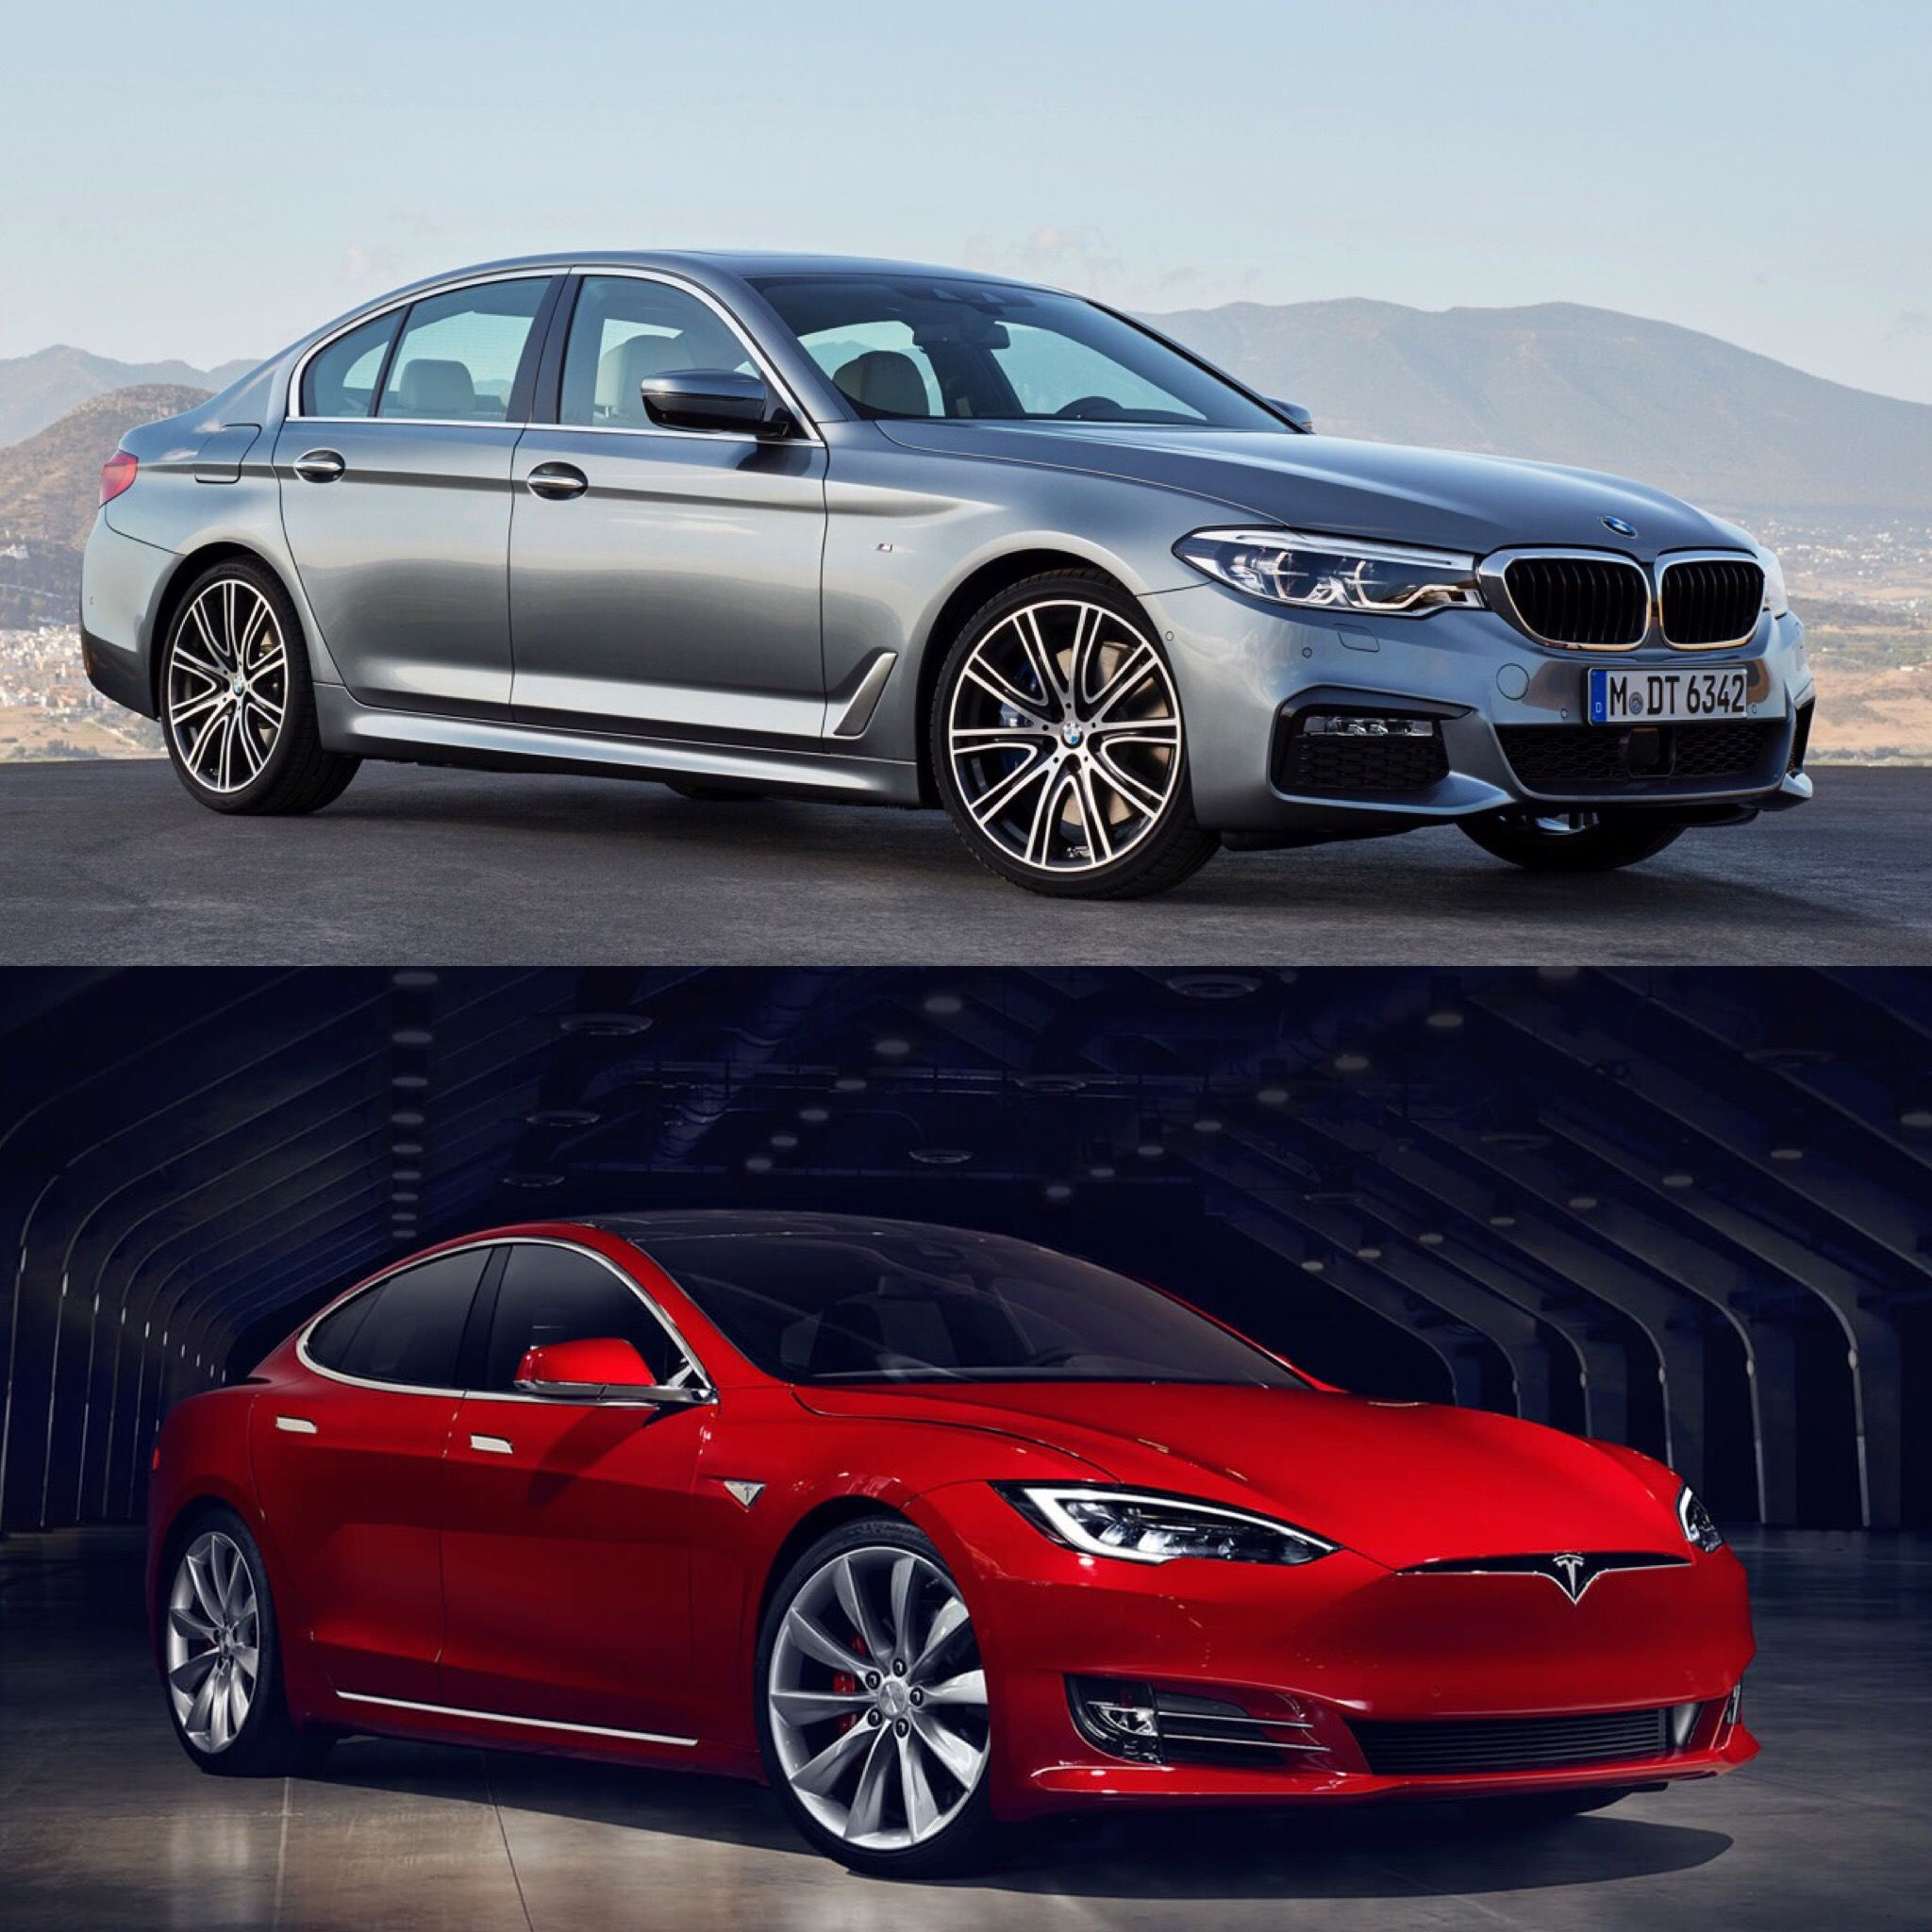 Now That The New BMW 5 Series Has Been Revealed, We Take A Look At How It  Compares To An Unusual Rival, The Tesla Model S.